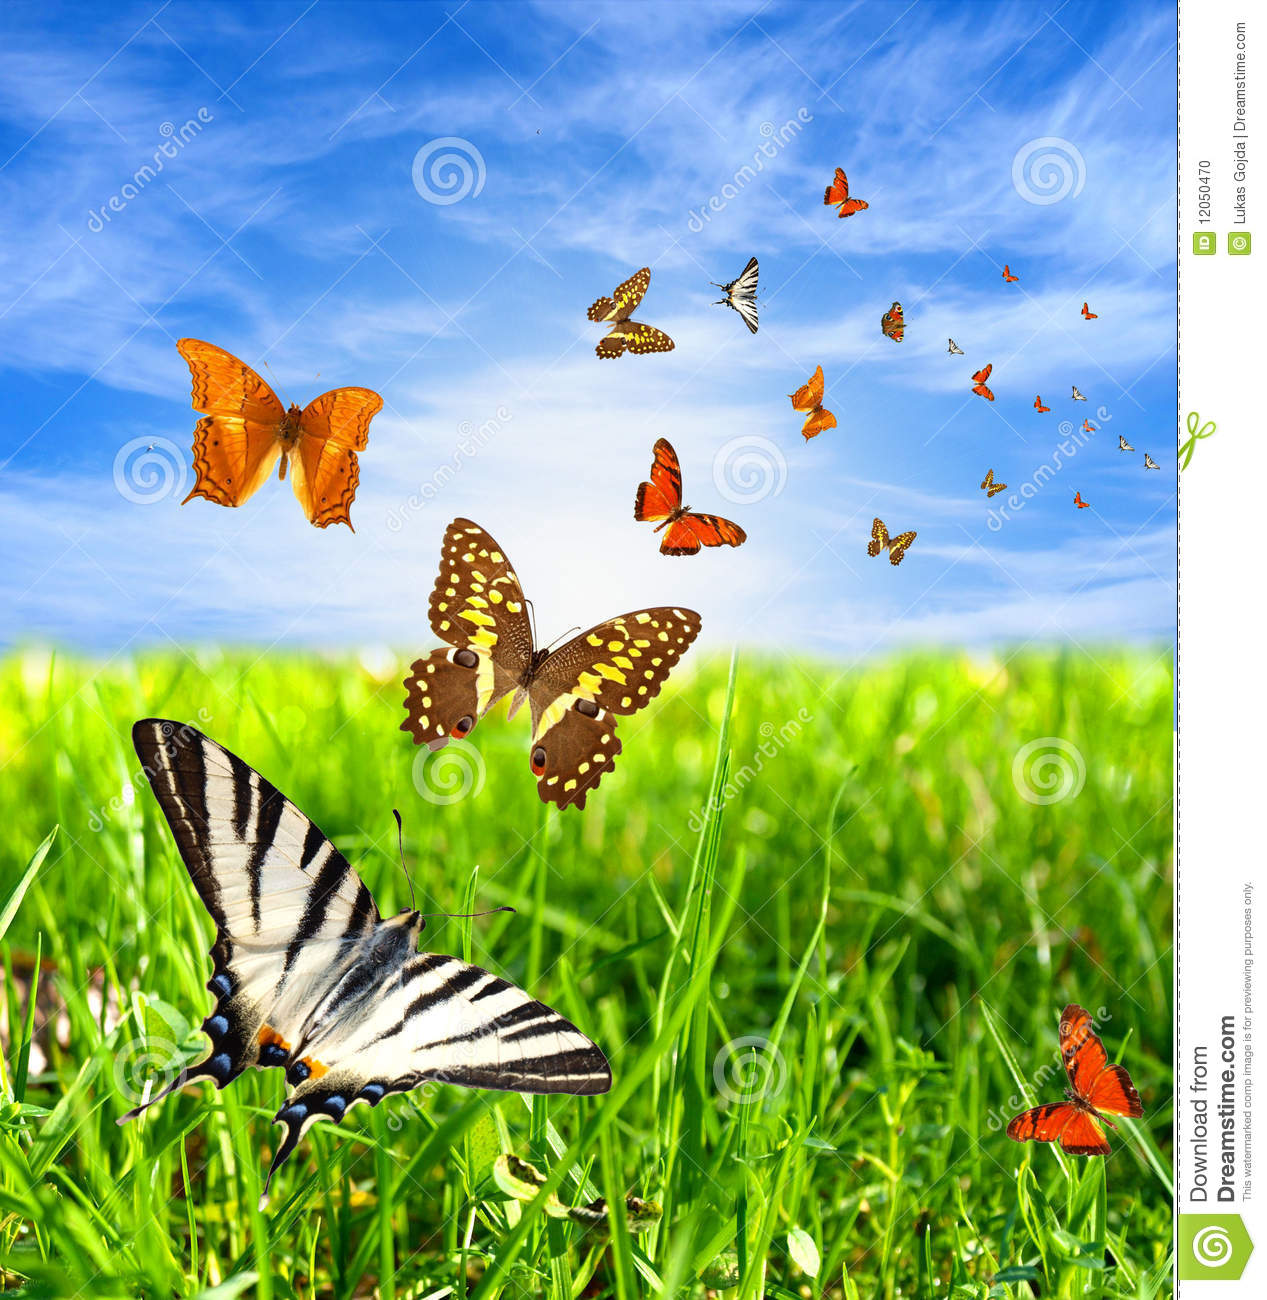 Beautiful Nature And Birds Designs For Living Room: Nature Beauty Stock Photo. Image Of Nature, Butterfly